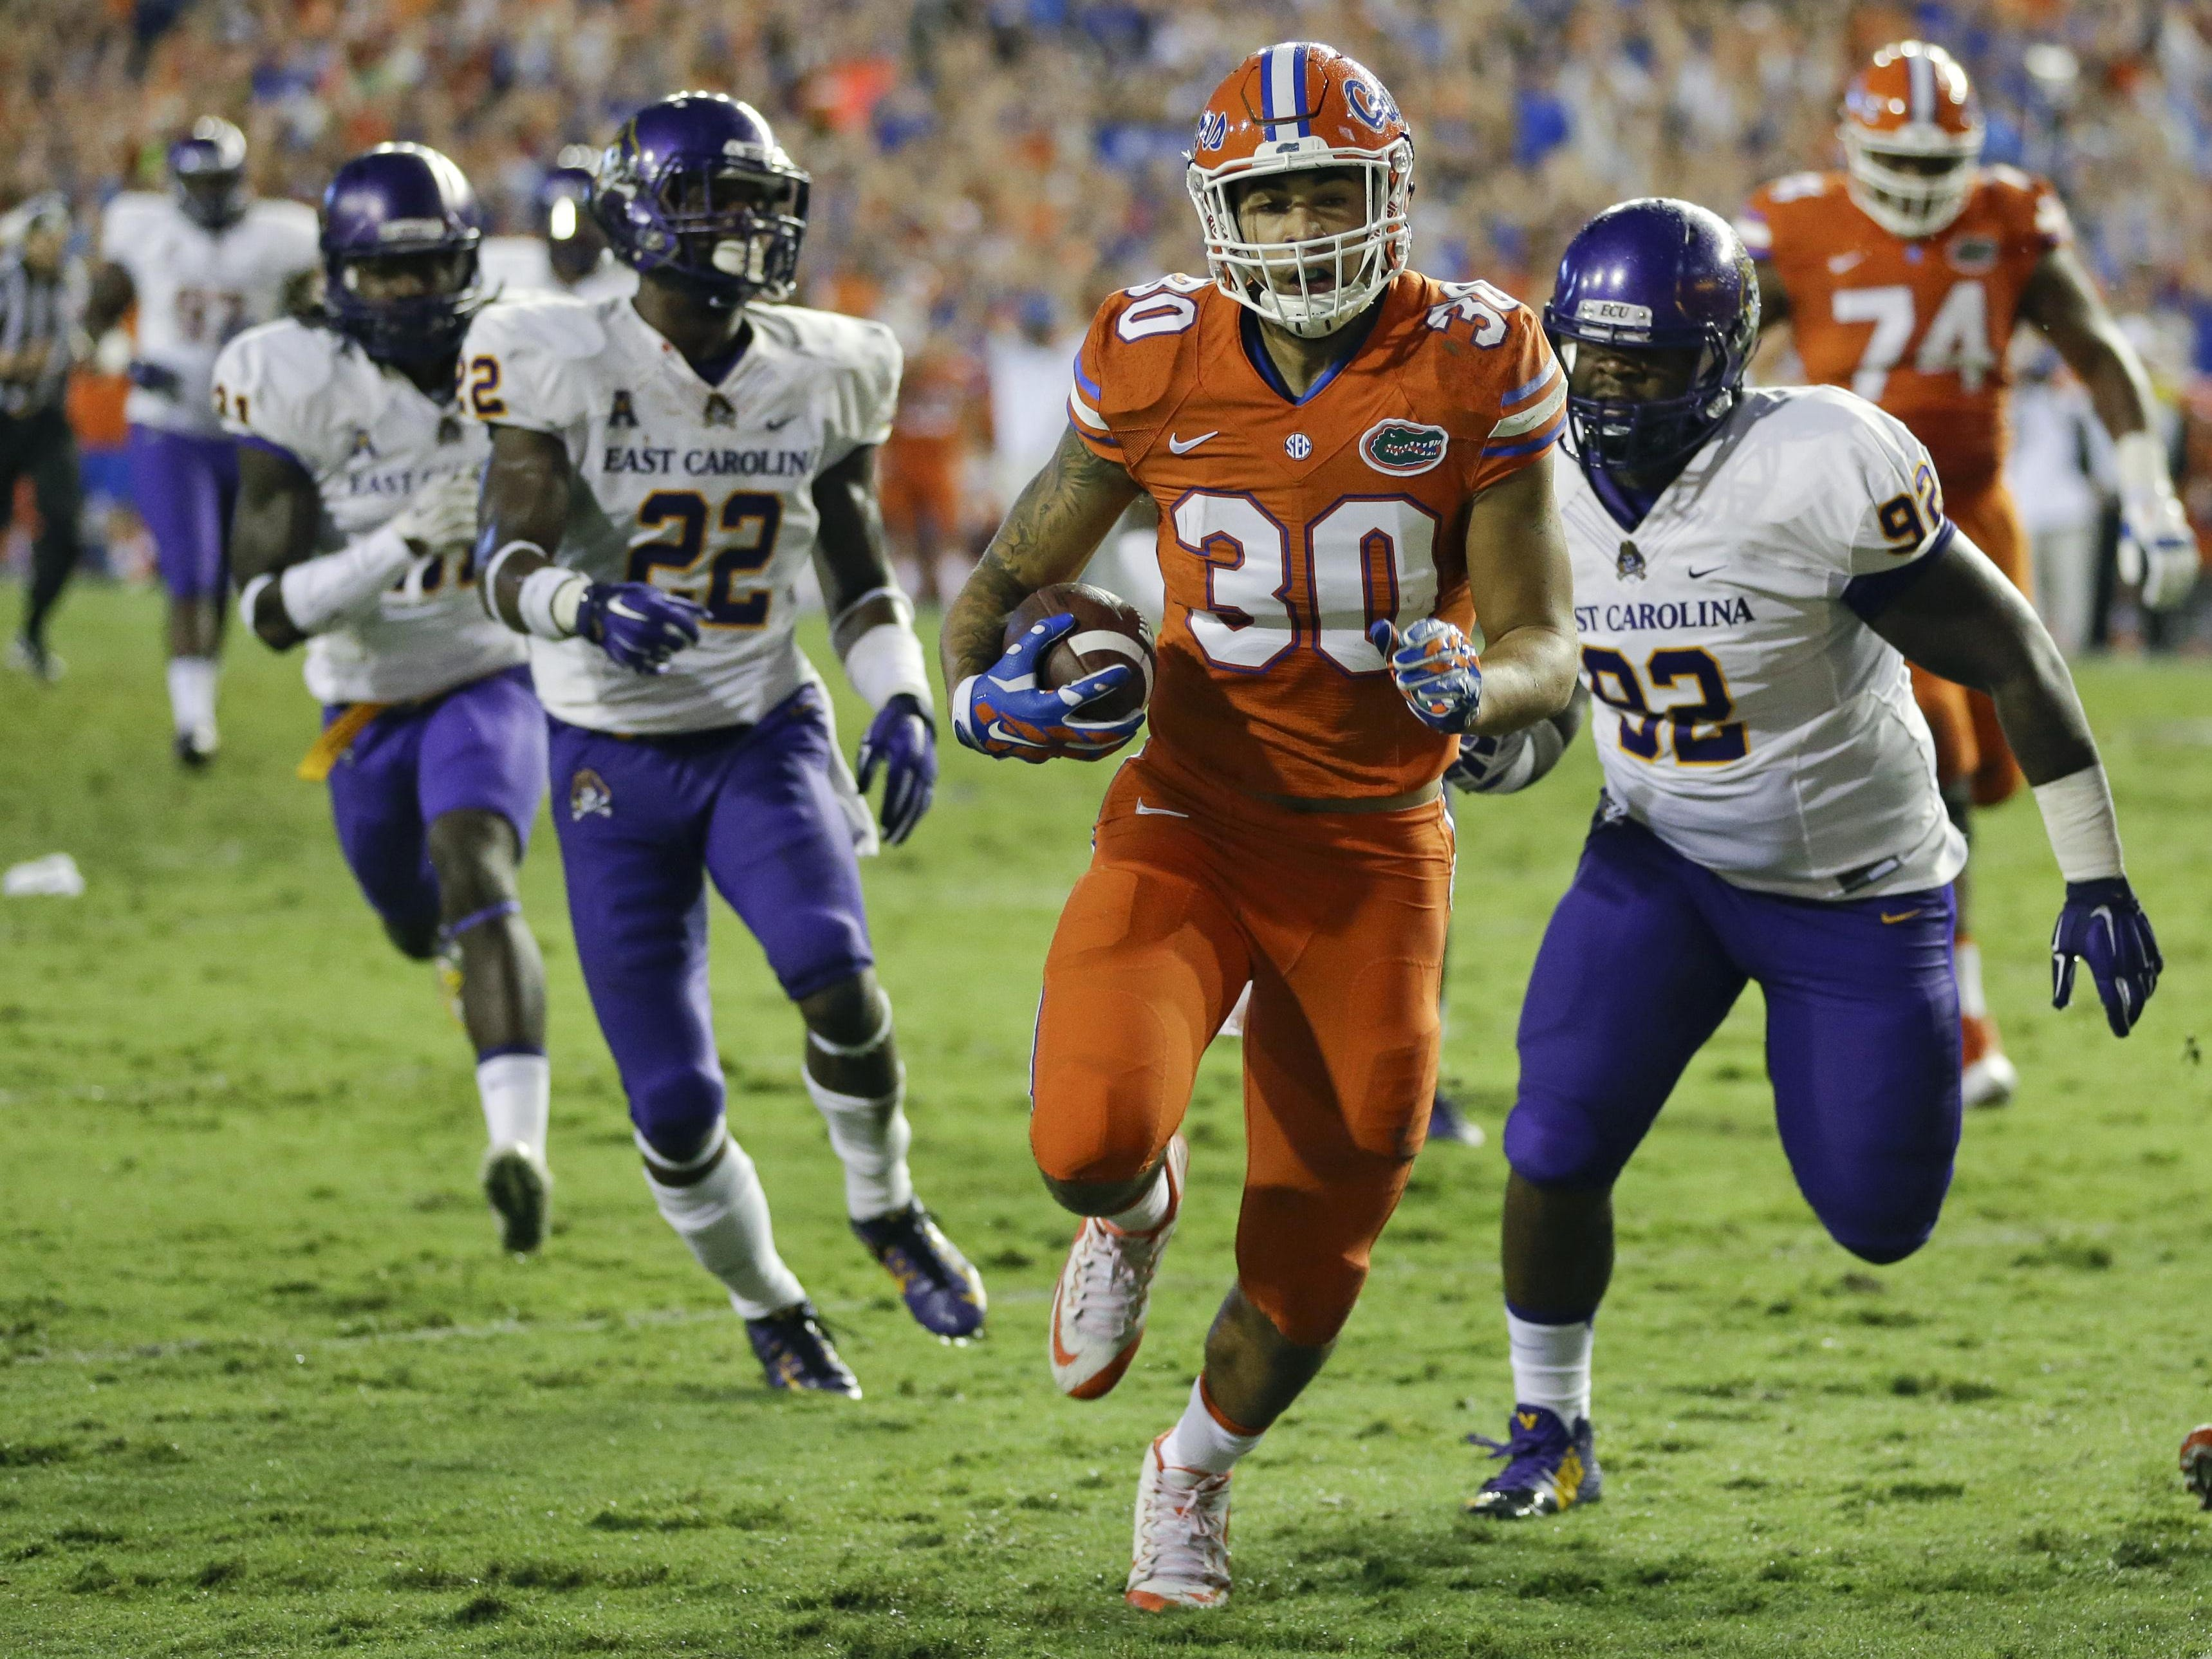 Florida tight end DeAndre Goolsby (30) runs past East Carolina nose tackle Mike Myers (92) and defensive back Terrell Richardson (22) for a touchdown on a 32-yard pass play Saturday night.